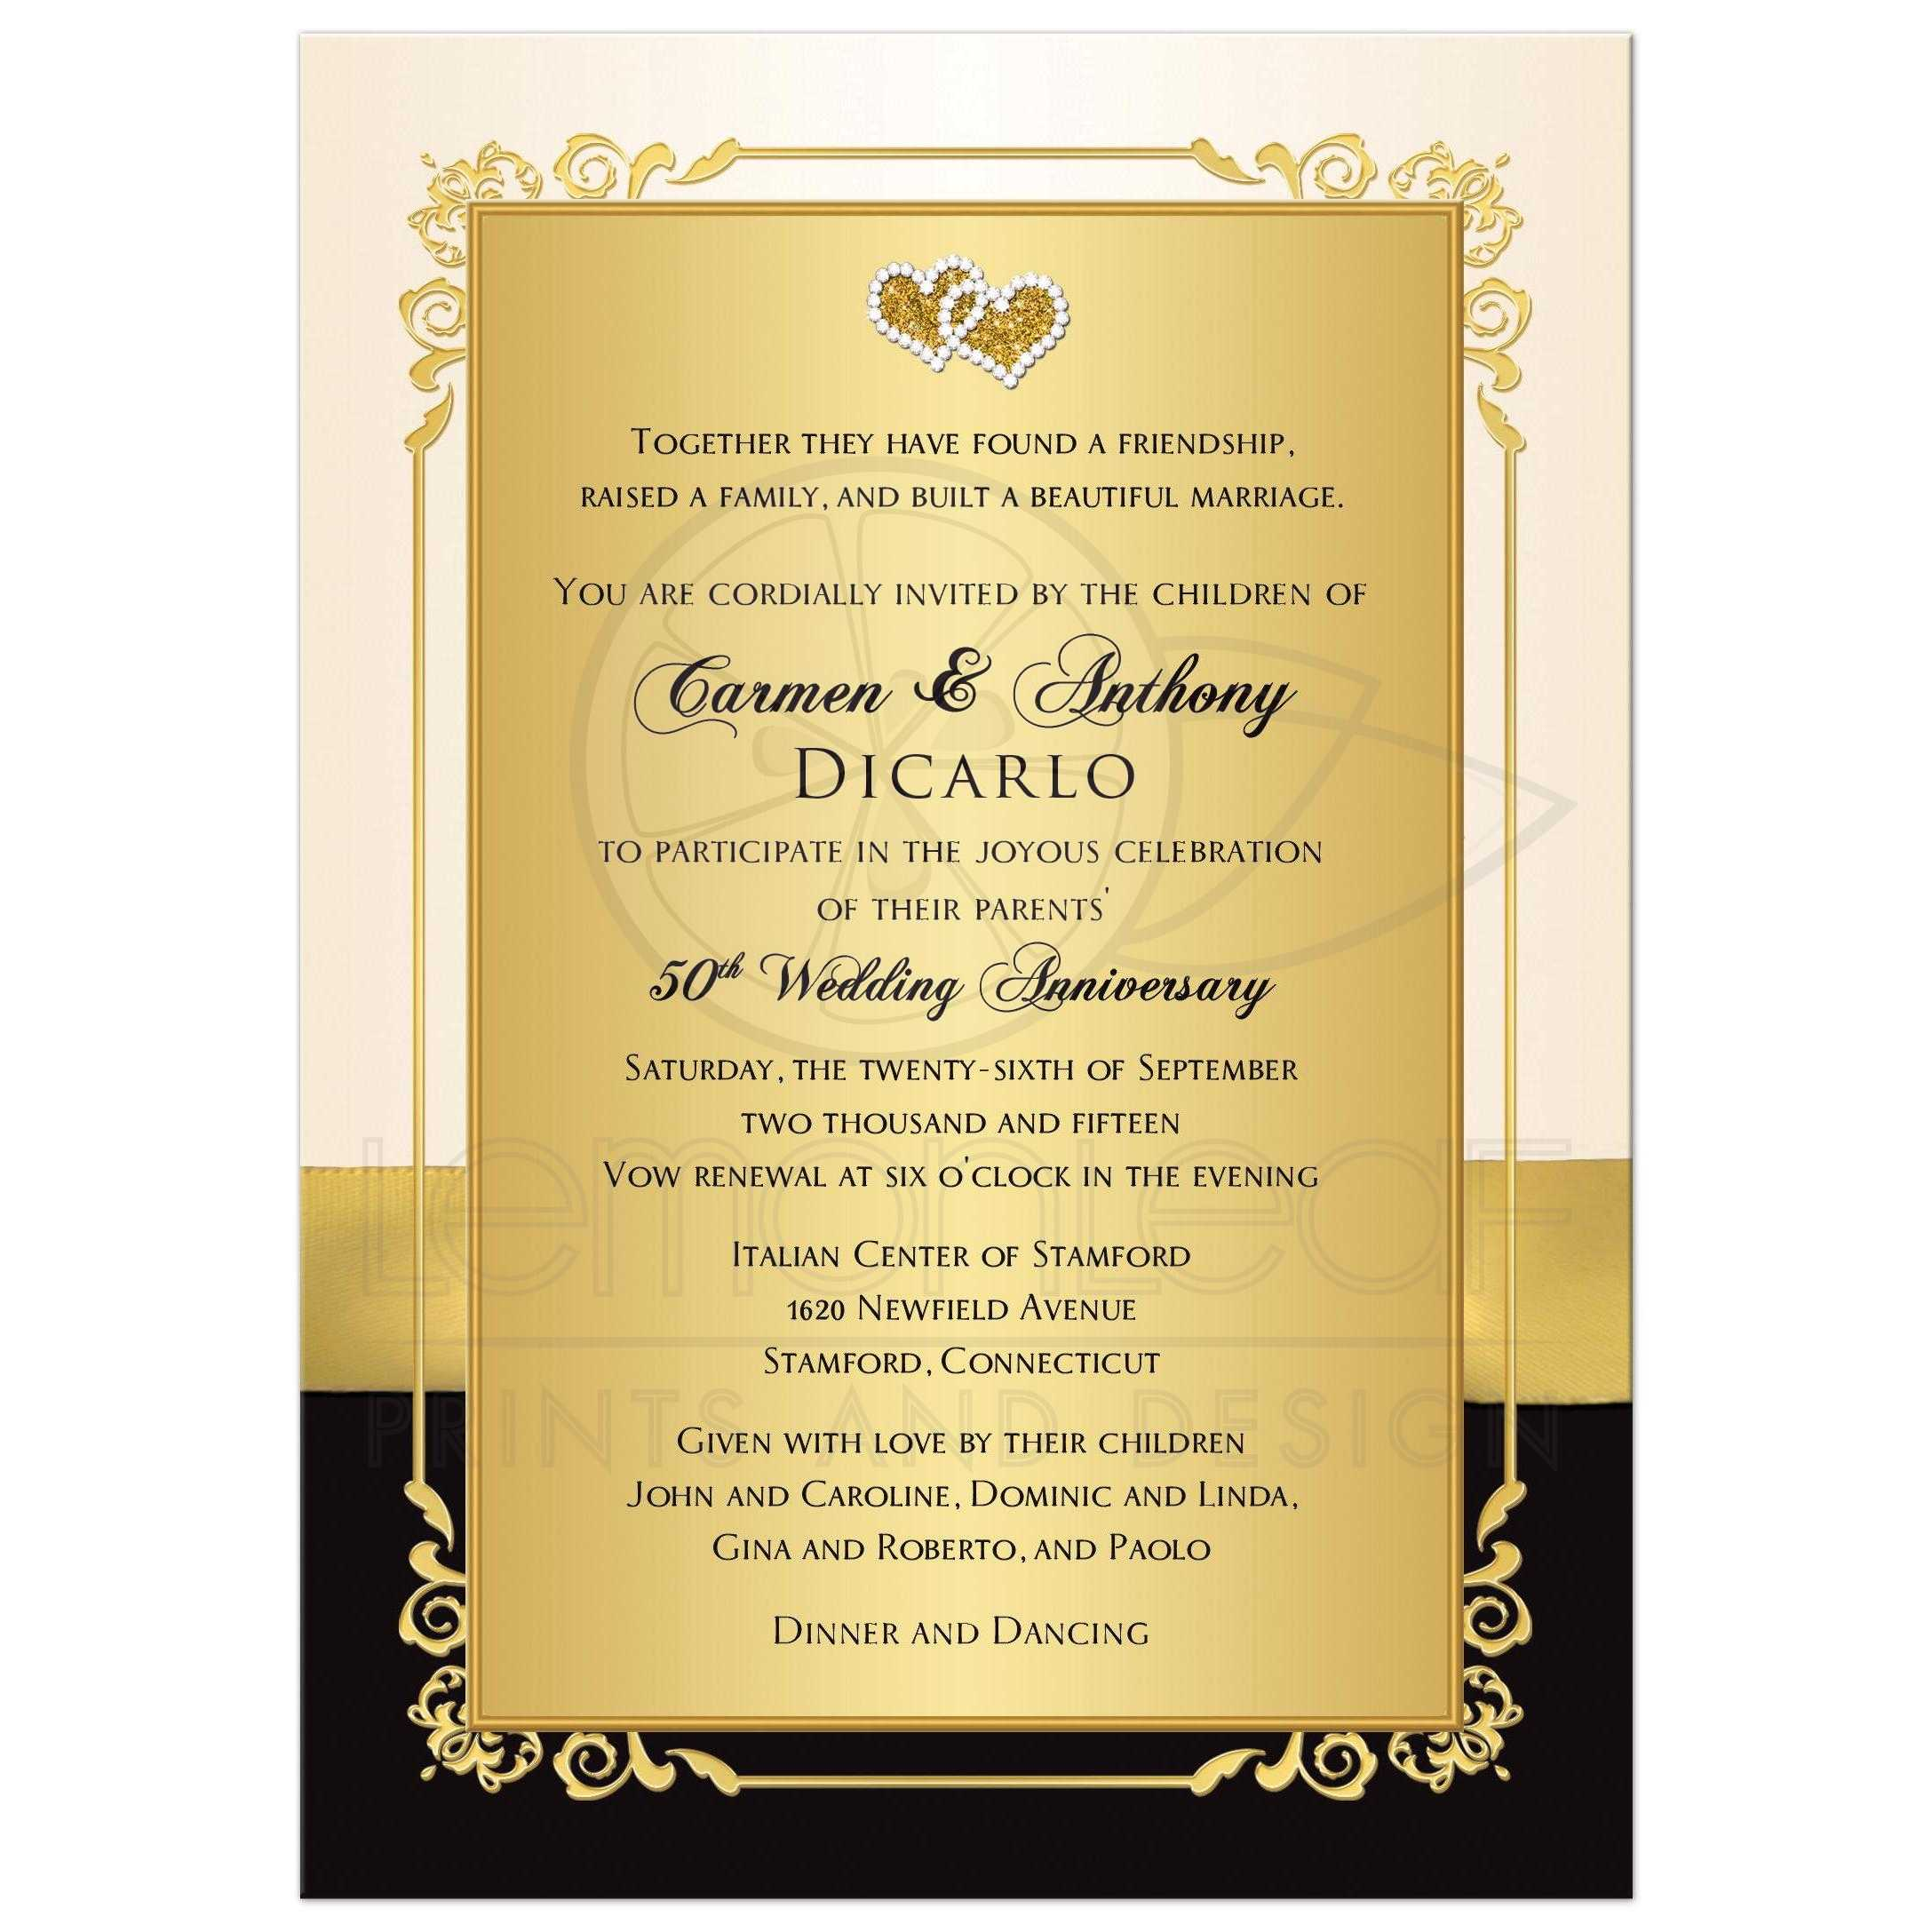 50th anniversary invite ivory black gold photo printed bow great elegant ivory black and gold floral golden wedding anniversary invite with gold ribbon stopboris Gallery